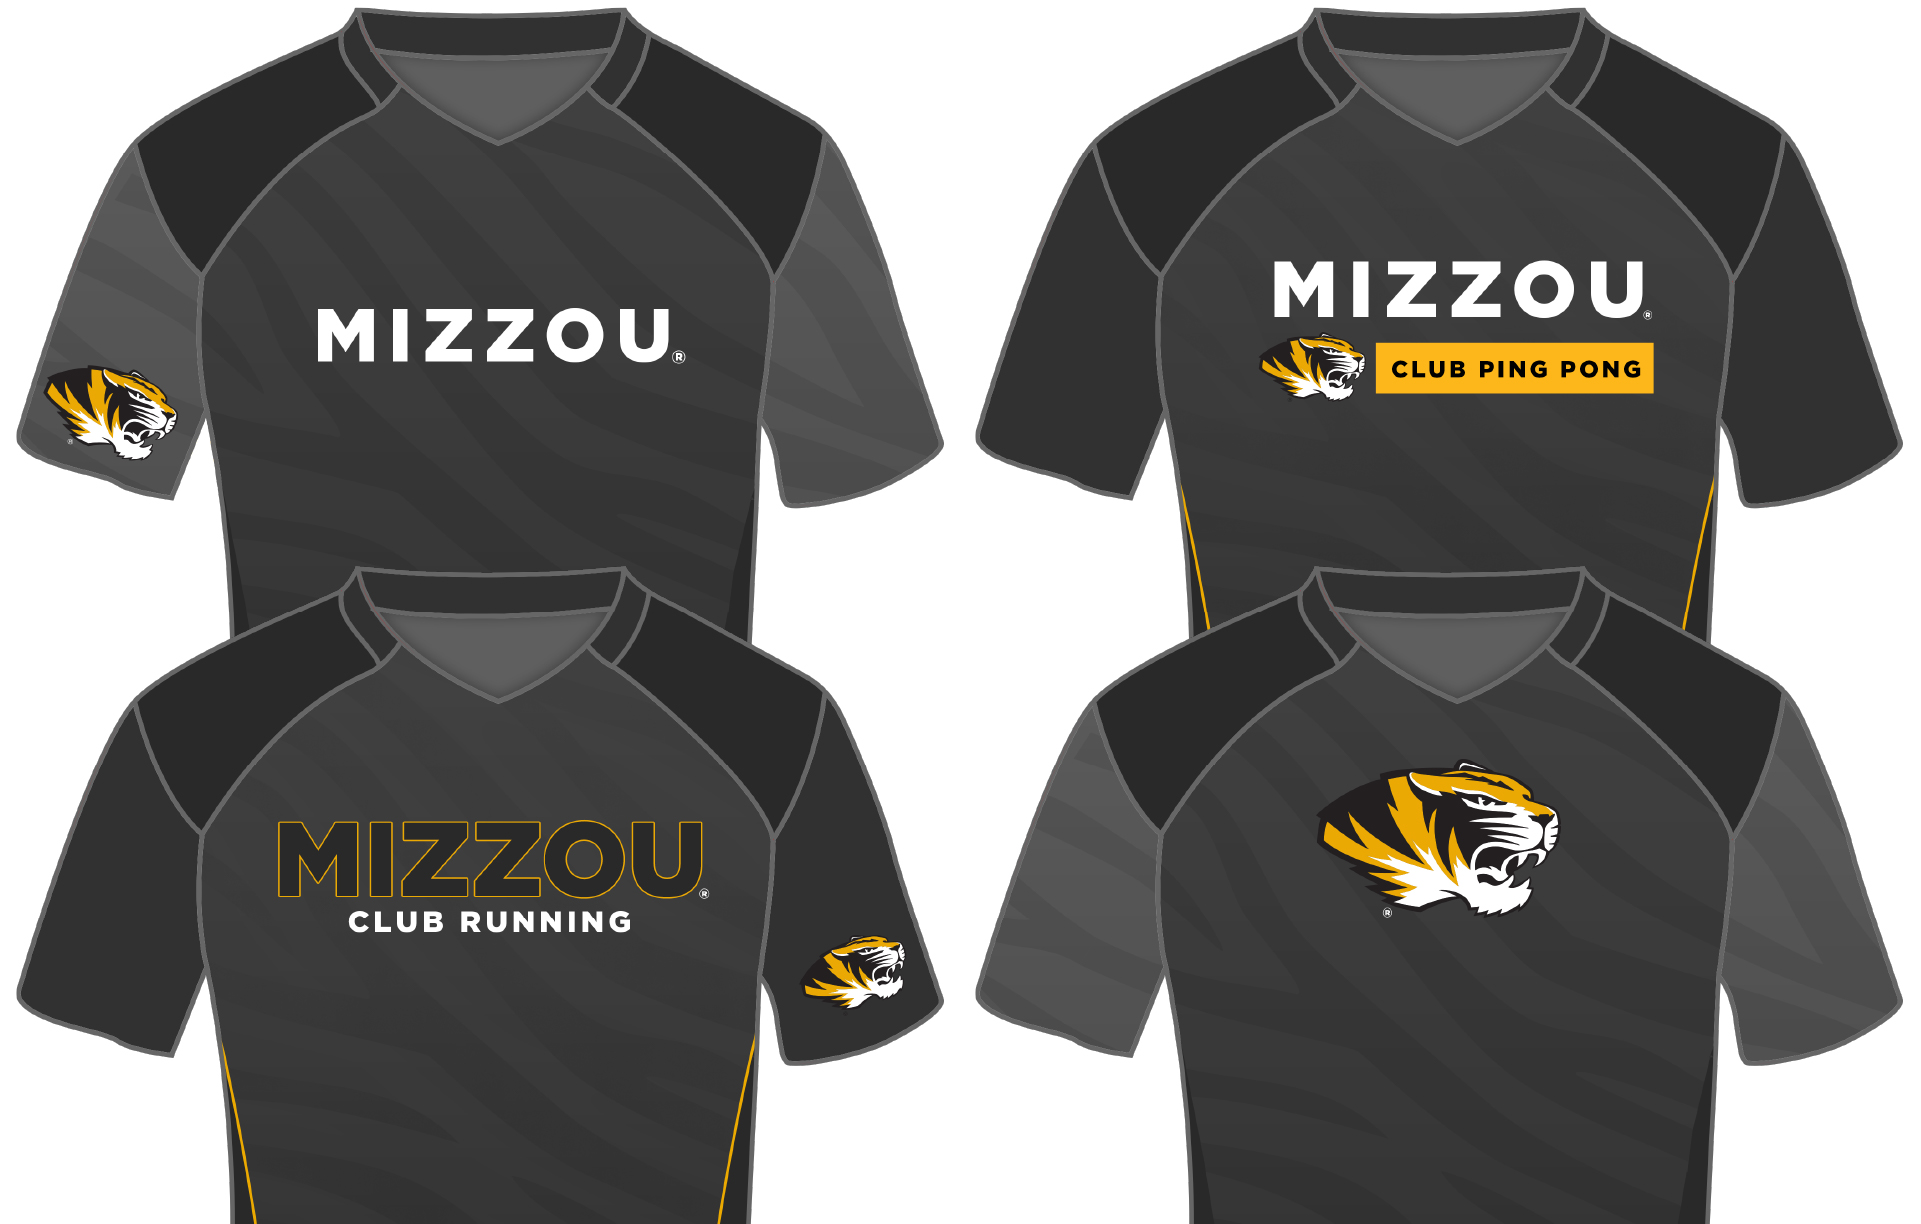 Examples of Mizzou Club Sports uniforms that meet university guidelines.